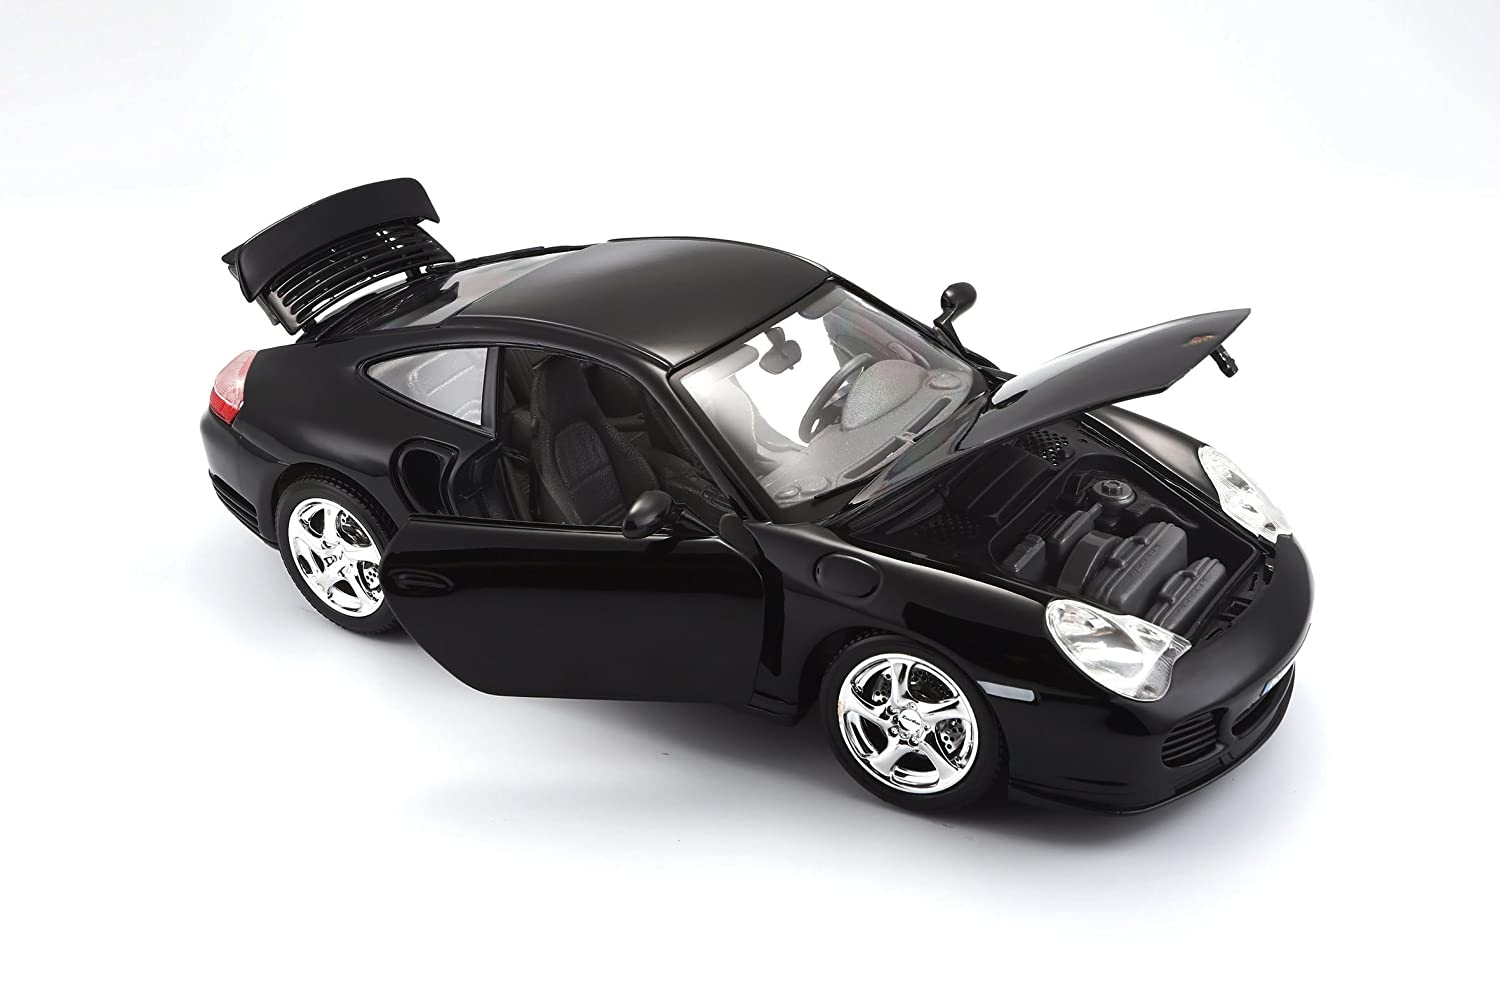 Bburago Porsche 911 Turbo Toy Car With Detailed Interior